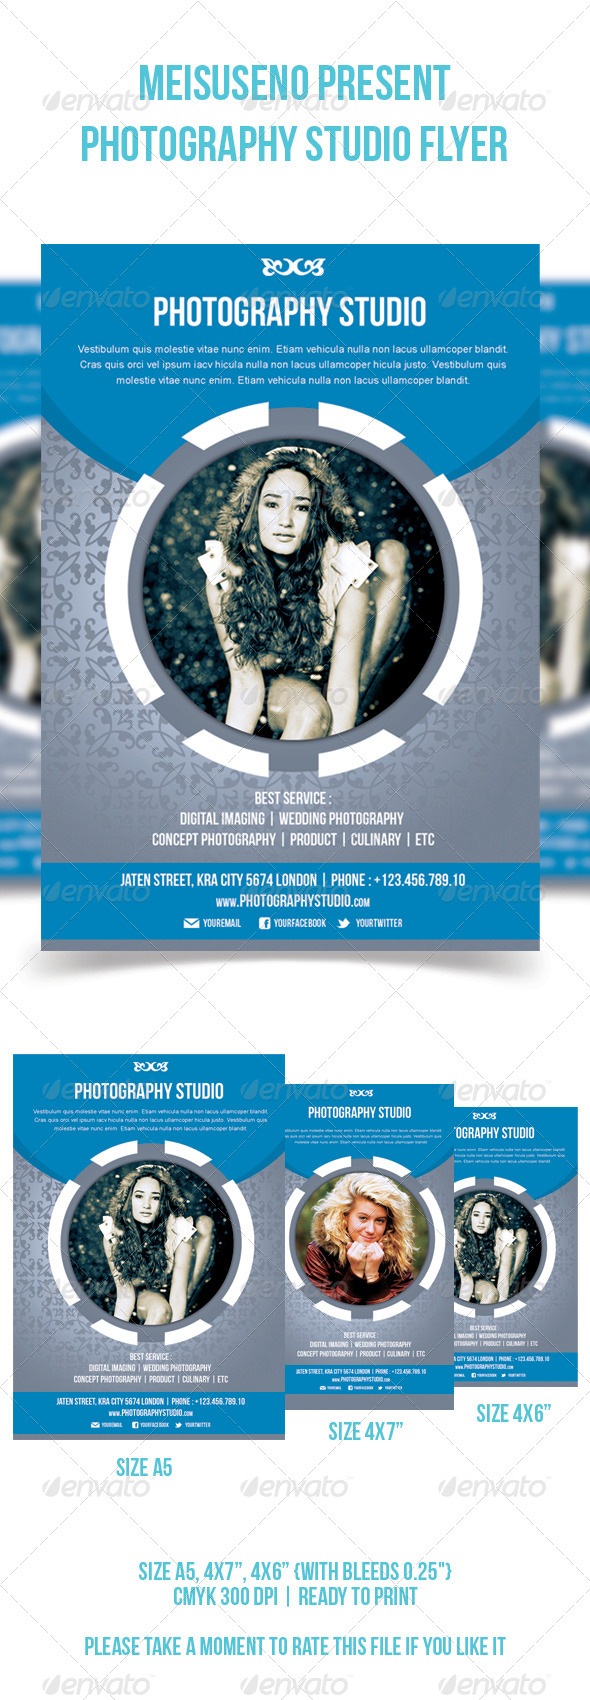 Photography Studio Flyer - V2 - Corporate Flyers